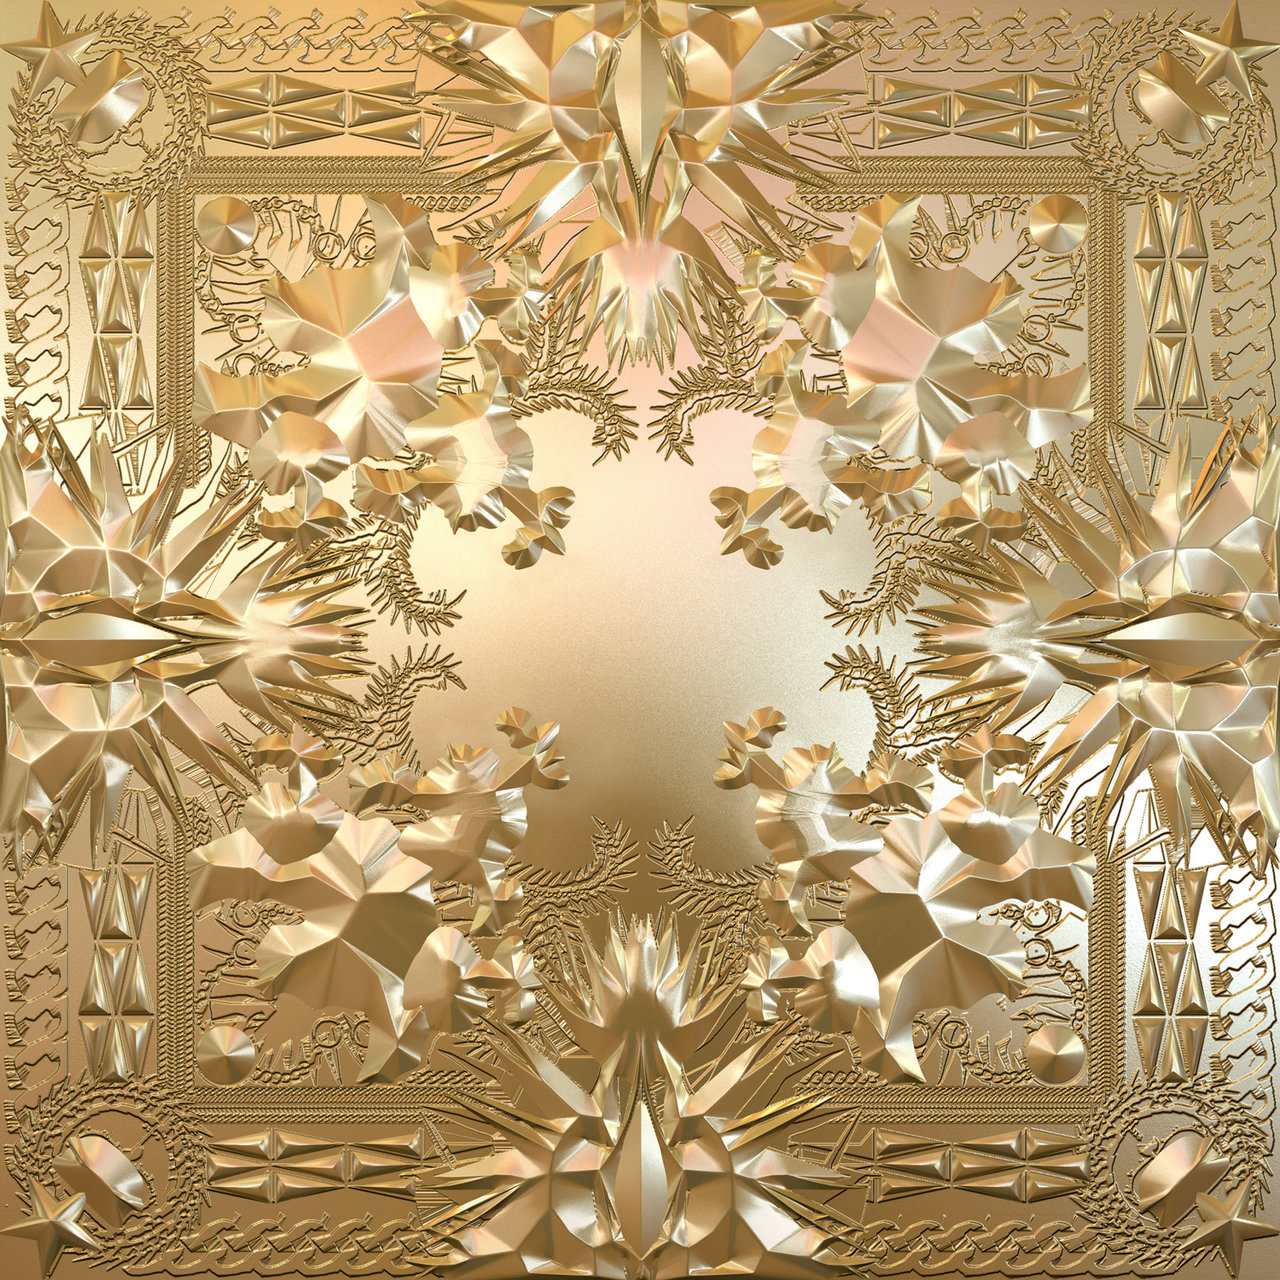 Tidal listen to the blueprint 3 on tidal watch the throne malvernweather Image collections